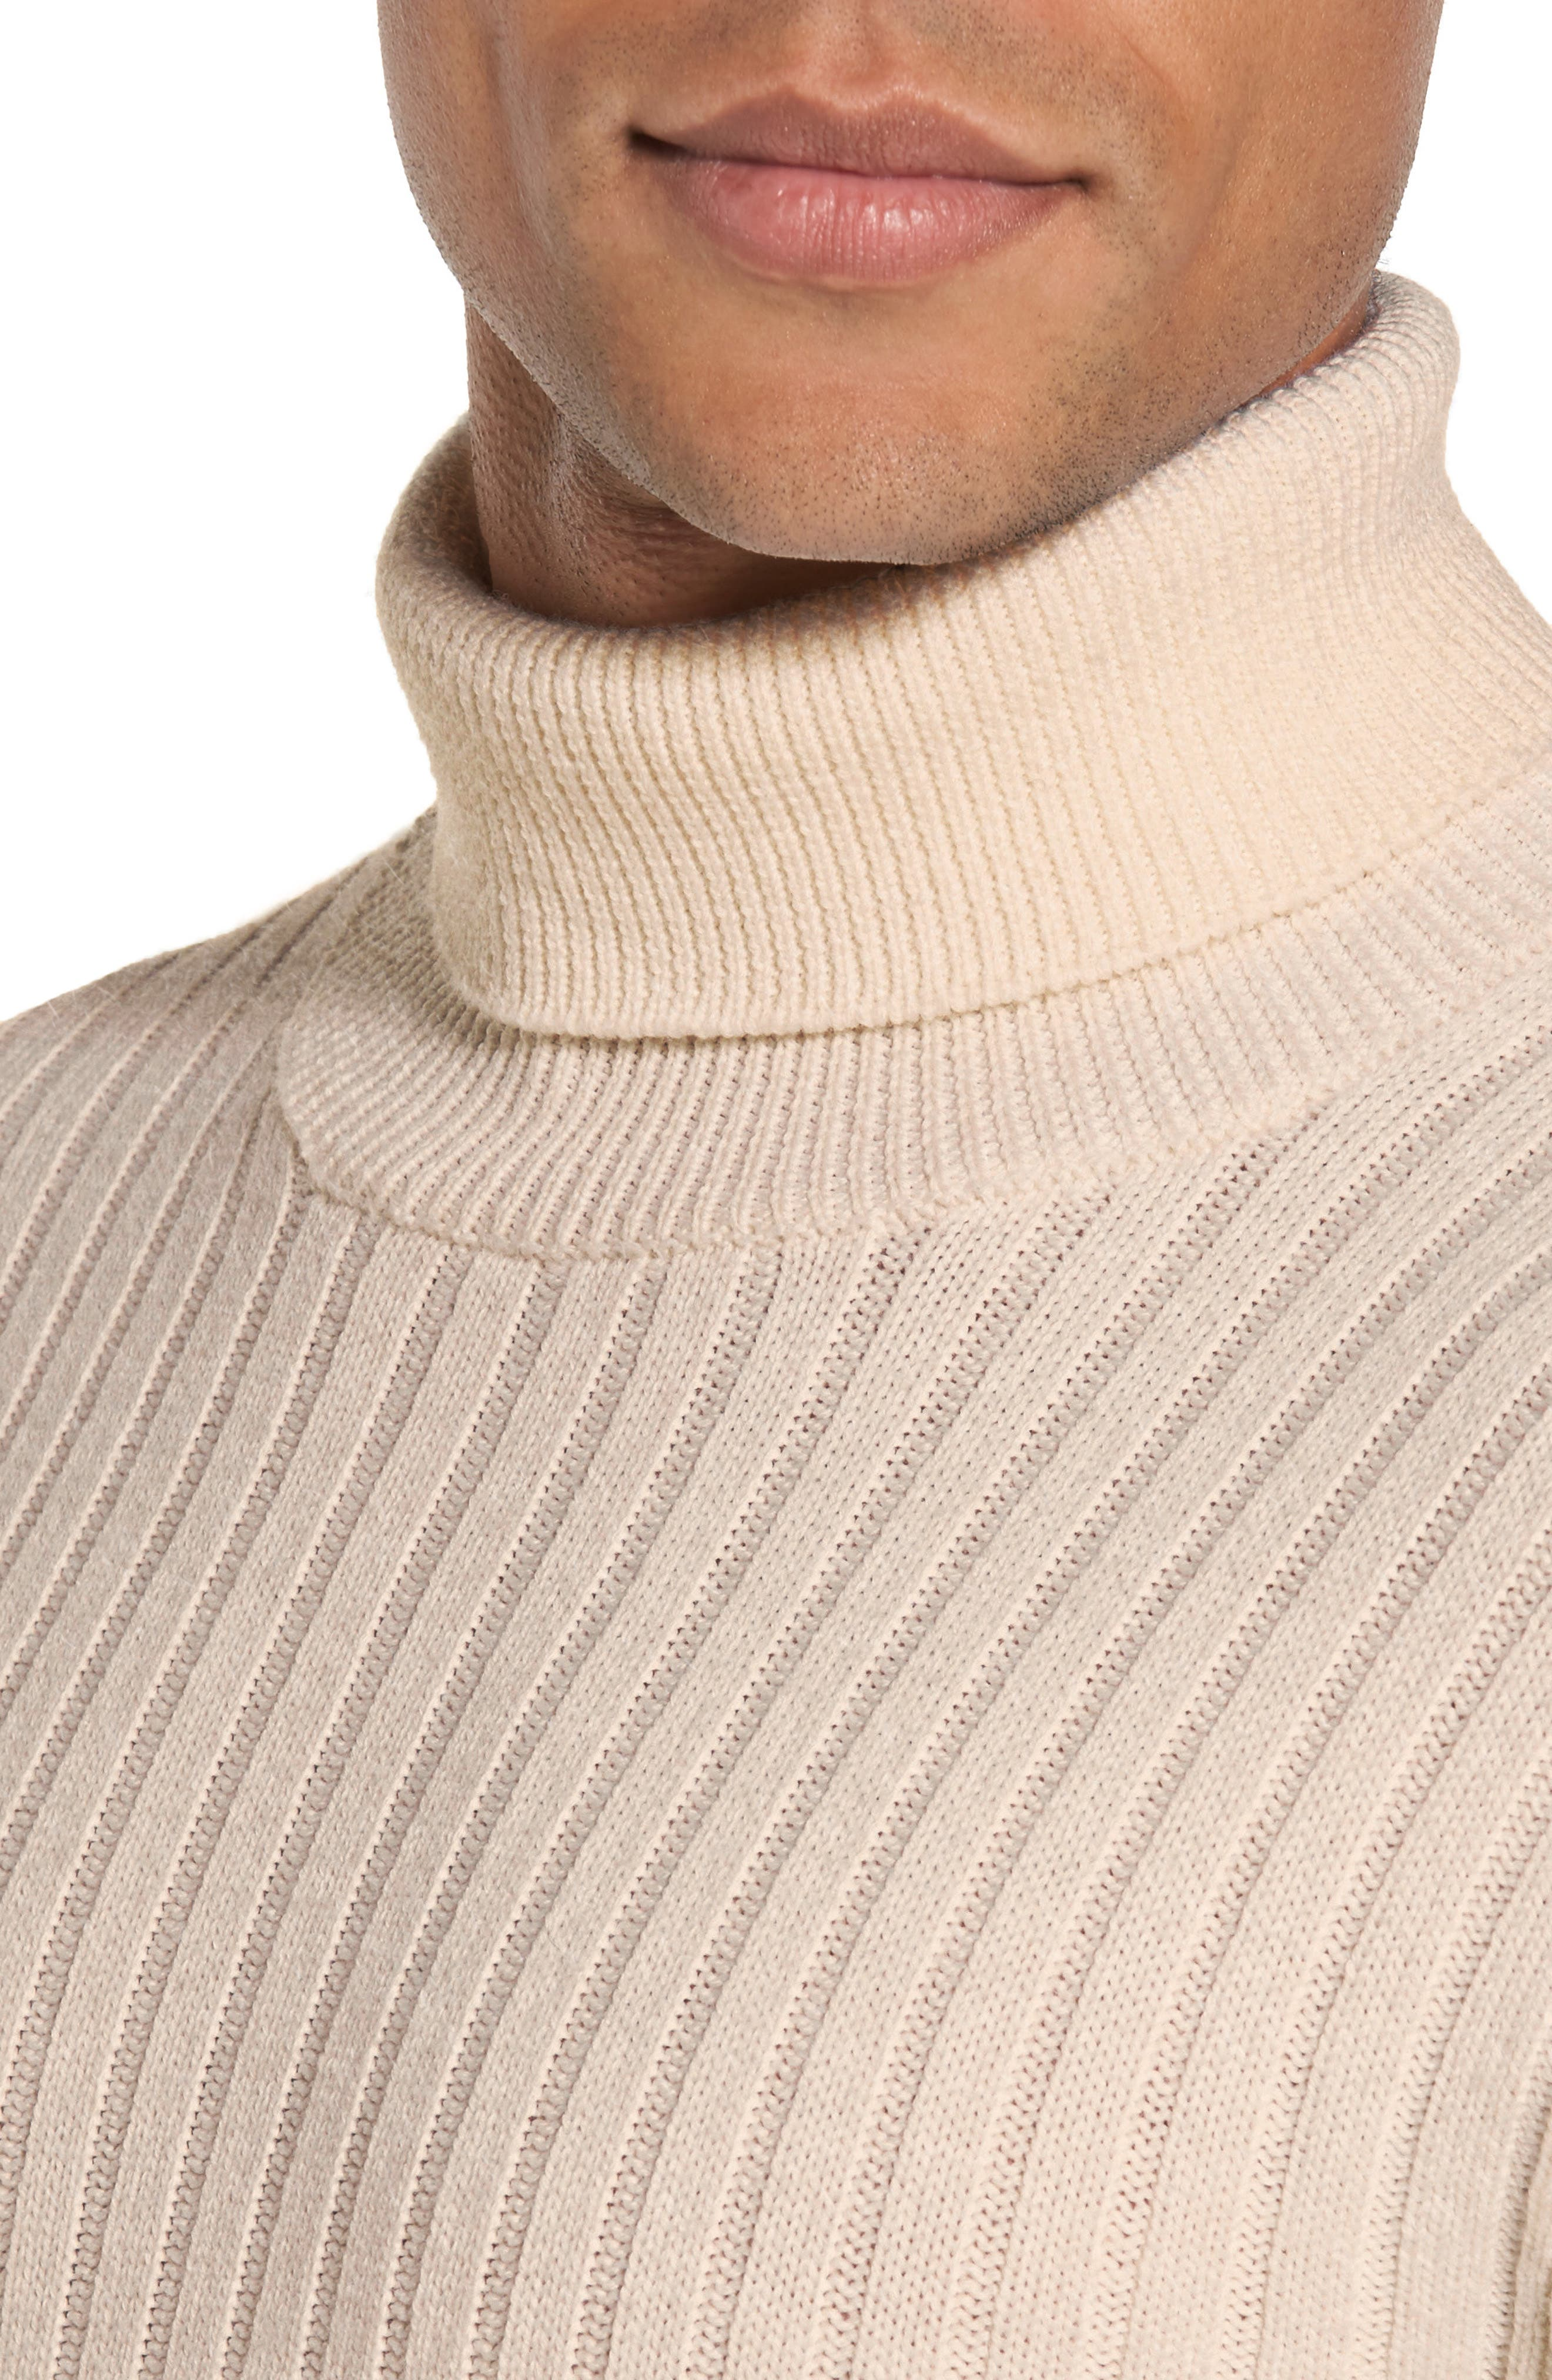 Ribbed Turtleneck Wool Sweater,                             Alternate thumbnail 5, color,                             Cream